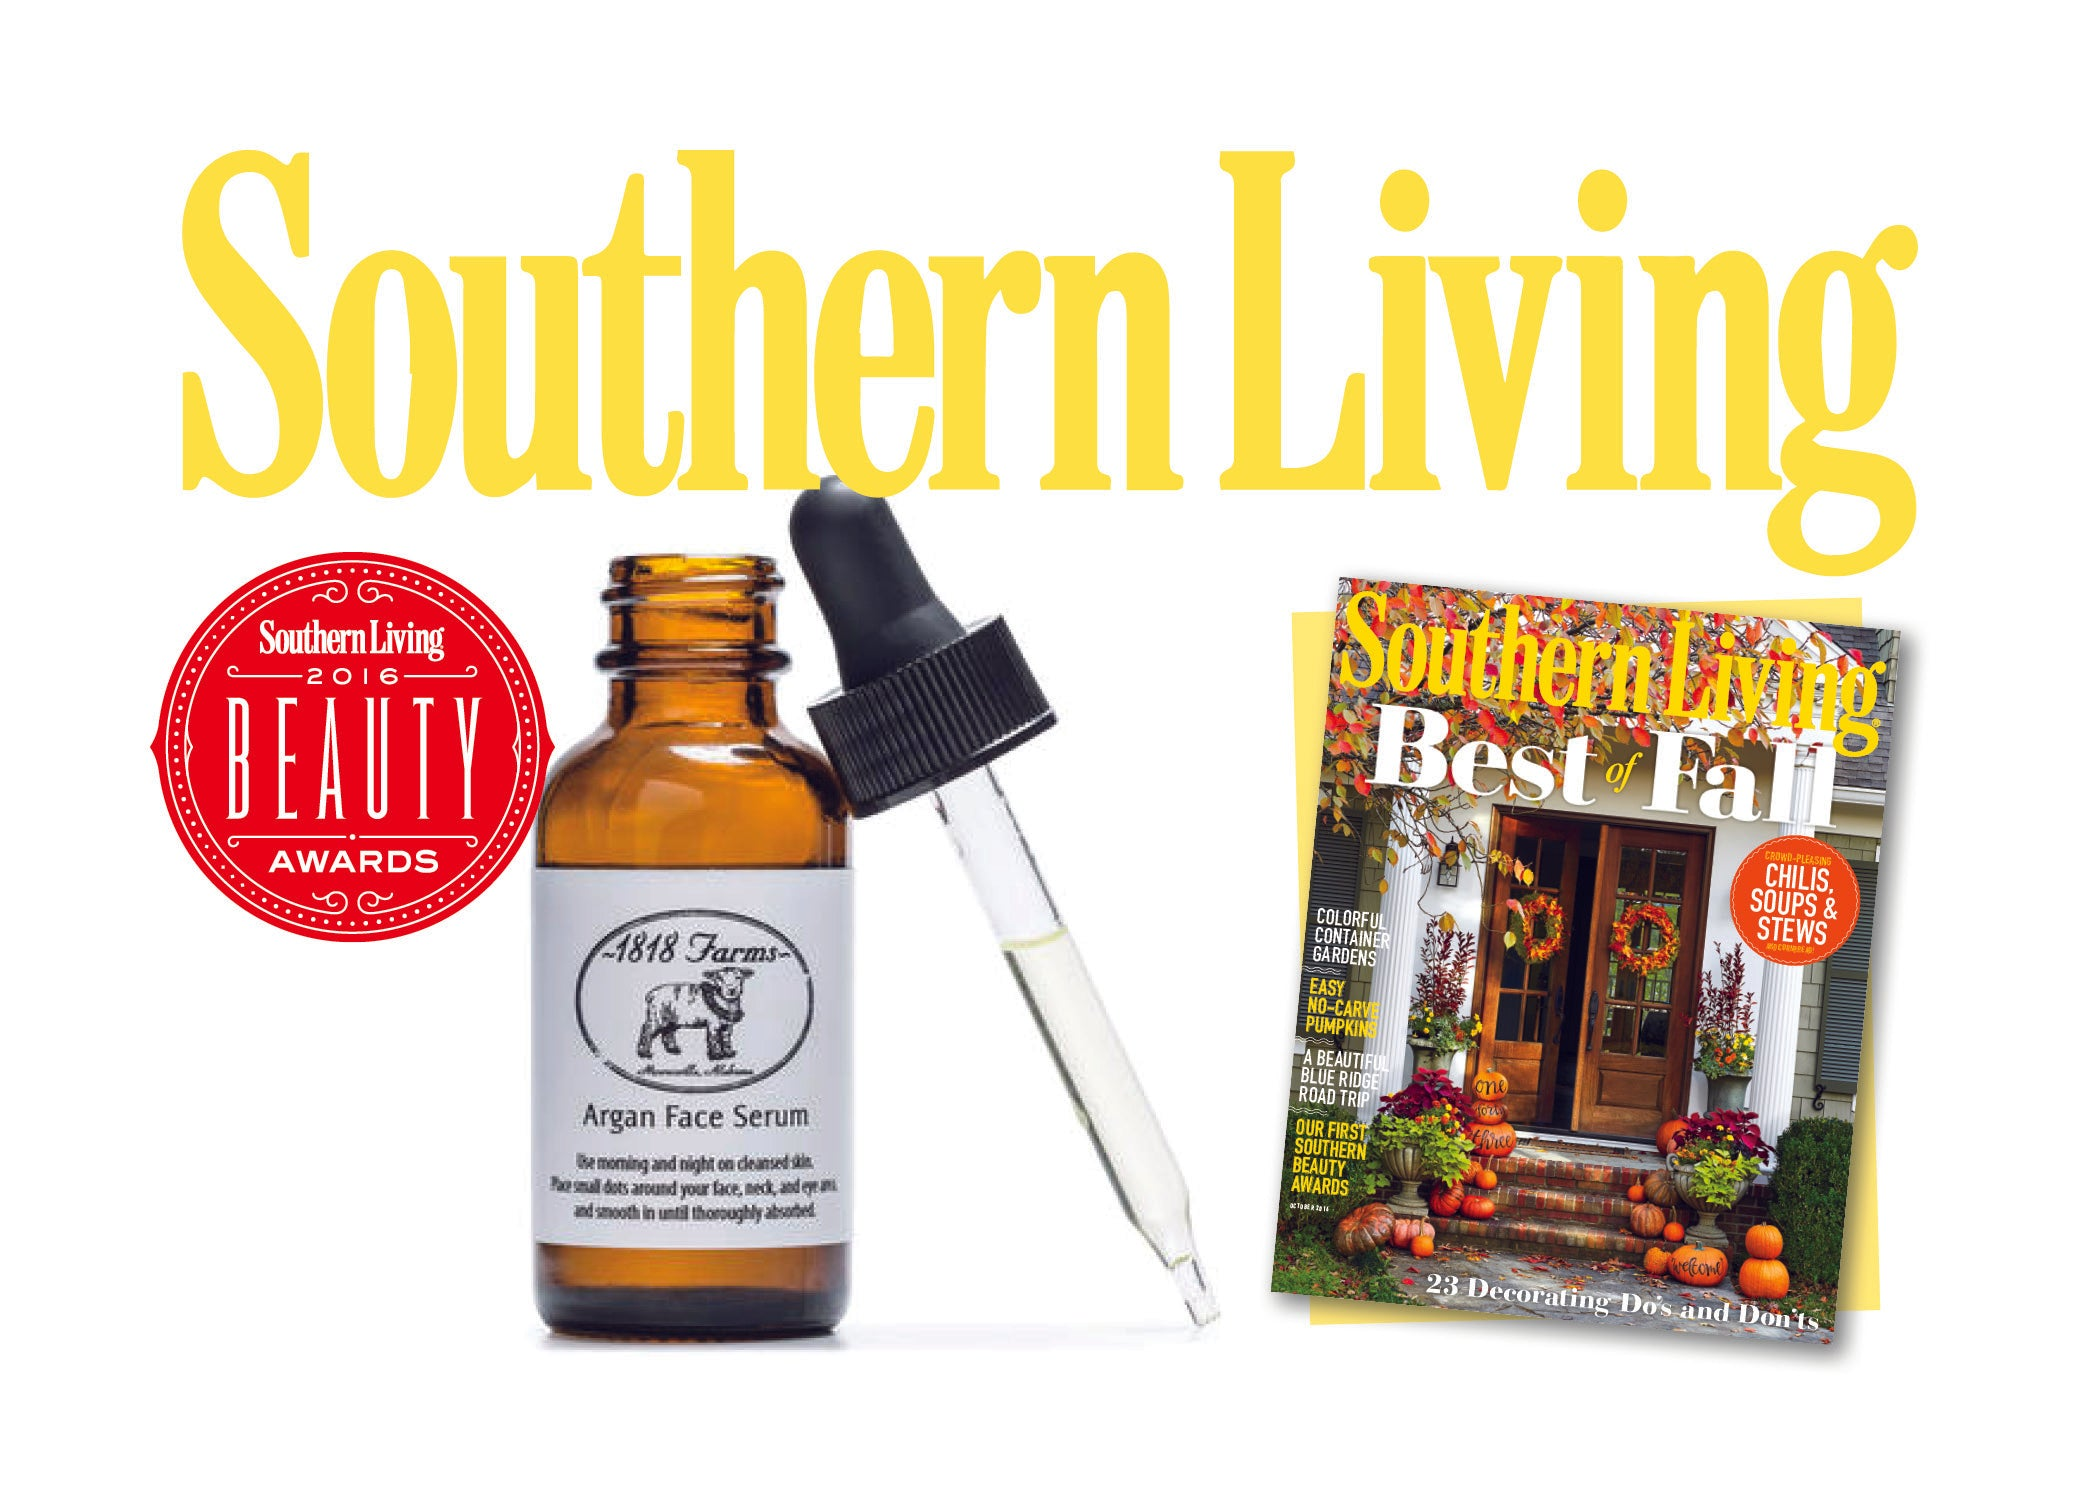 1818 Farms' Argan Face Serum Featured in Southern Living